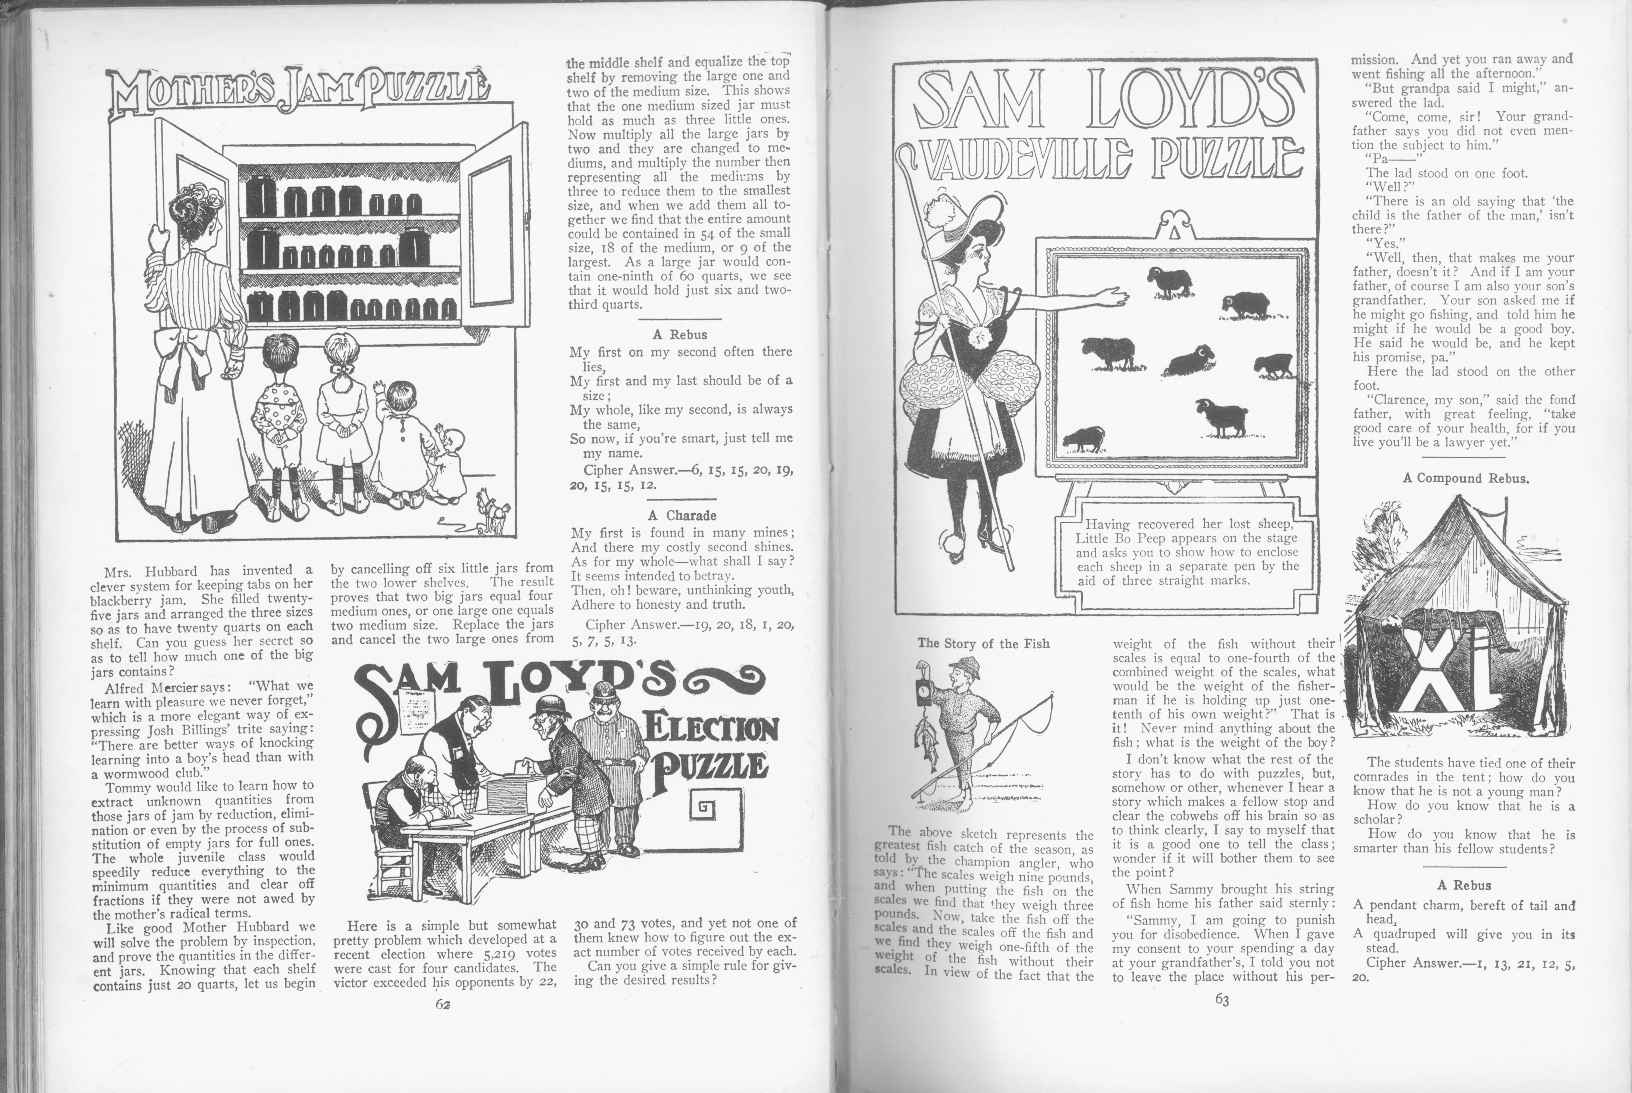 Sam Loyd - Cyclopedia of Puzzles - page 62-63